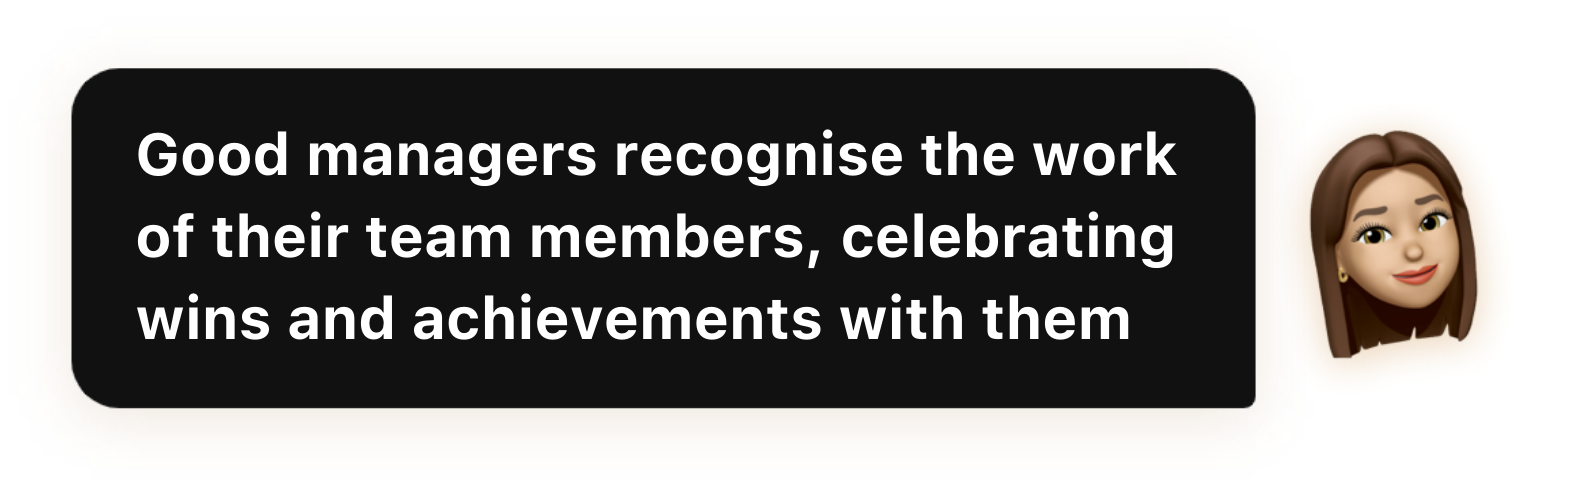 Good managers recognise the work of their team members, celebrating wins and achievements with them - Popwork